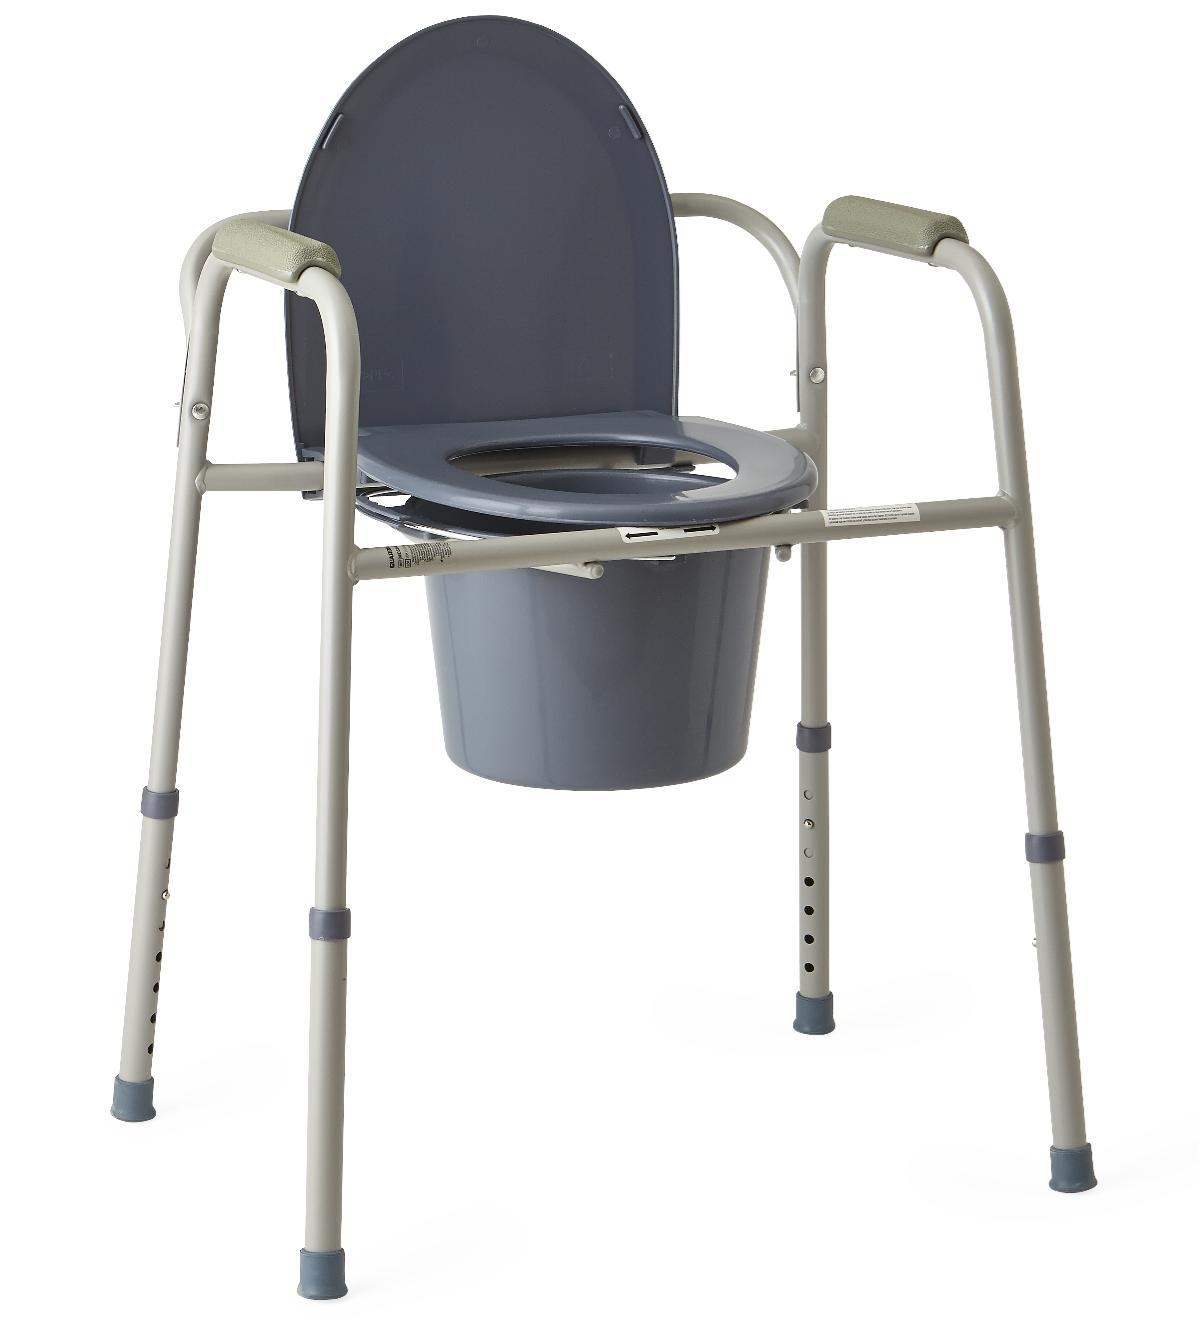 Equipment & Furnishings Bathroom Safety Commodes - Mds89664 - Commode 3-in-1 Steel MDS89664